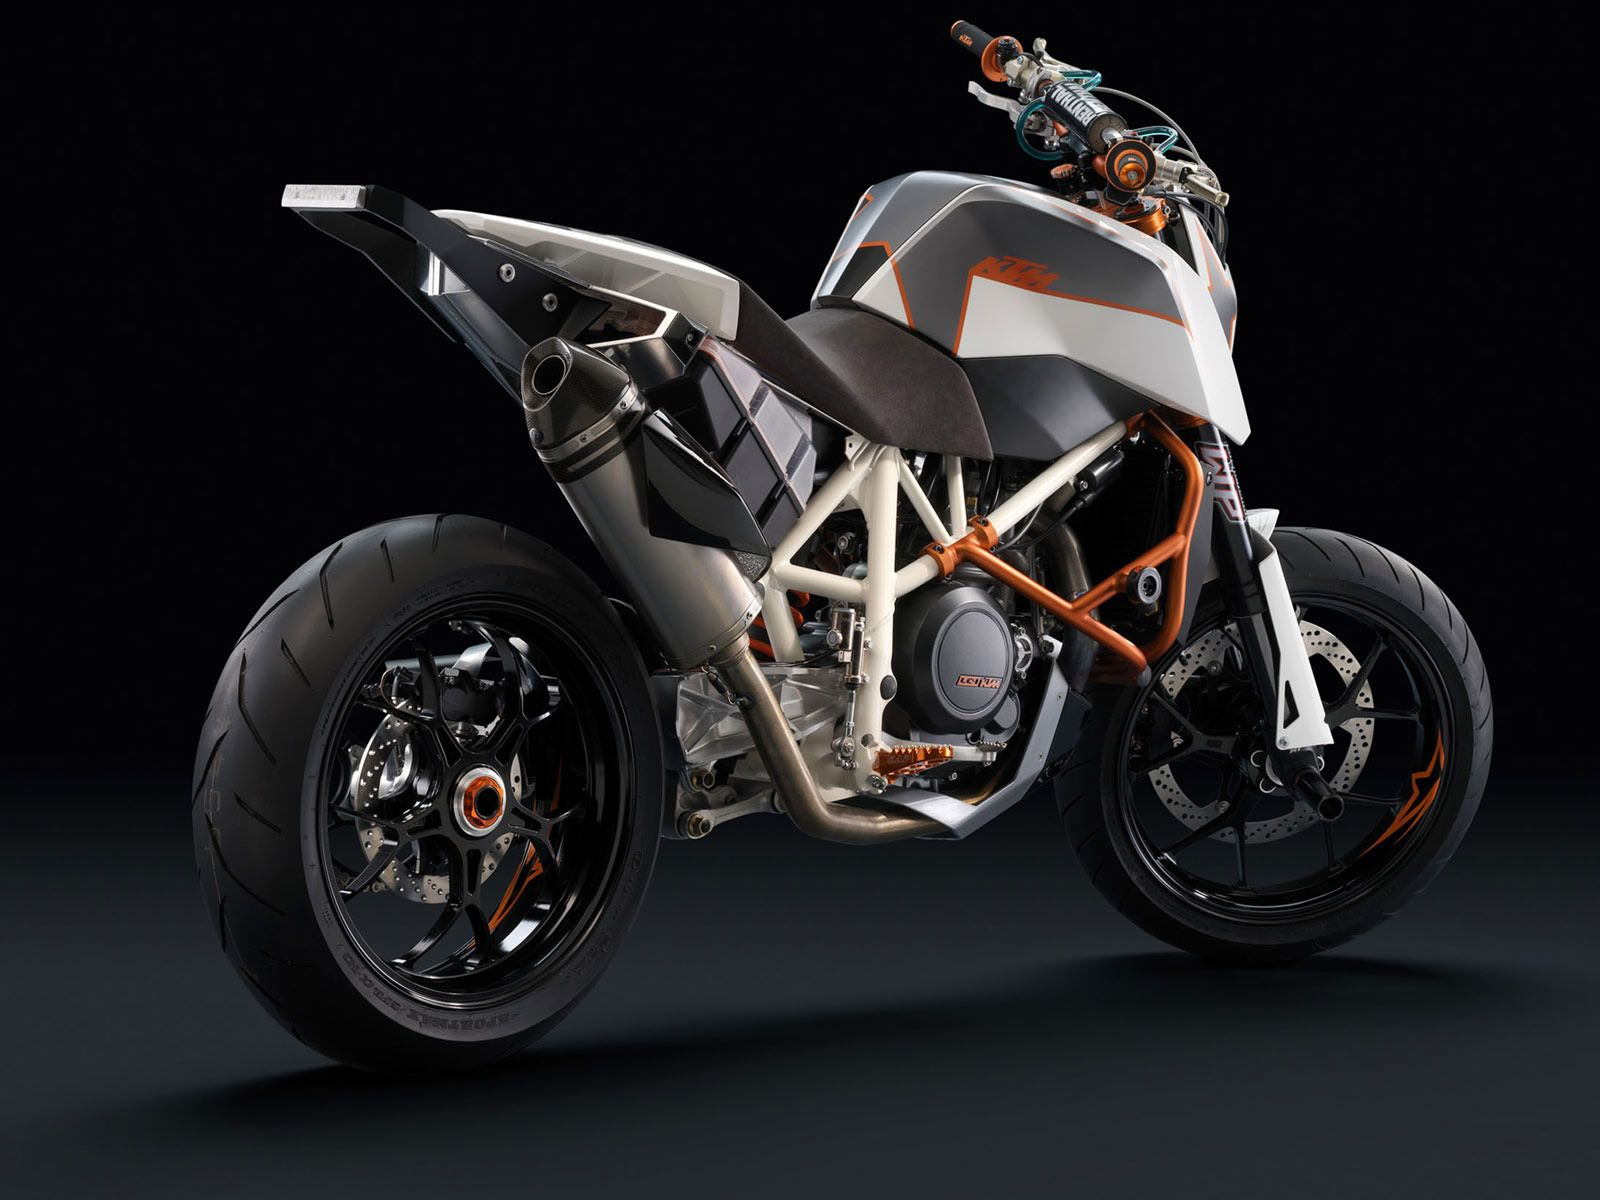 Ktm 690 smc r wallpapers for desktop - Ktm 690 Duke R Wallpaper Motorcycle Wallpapers